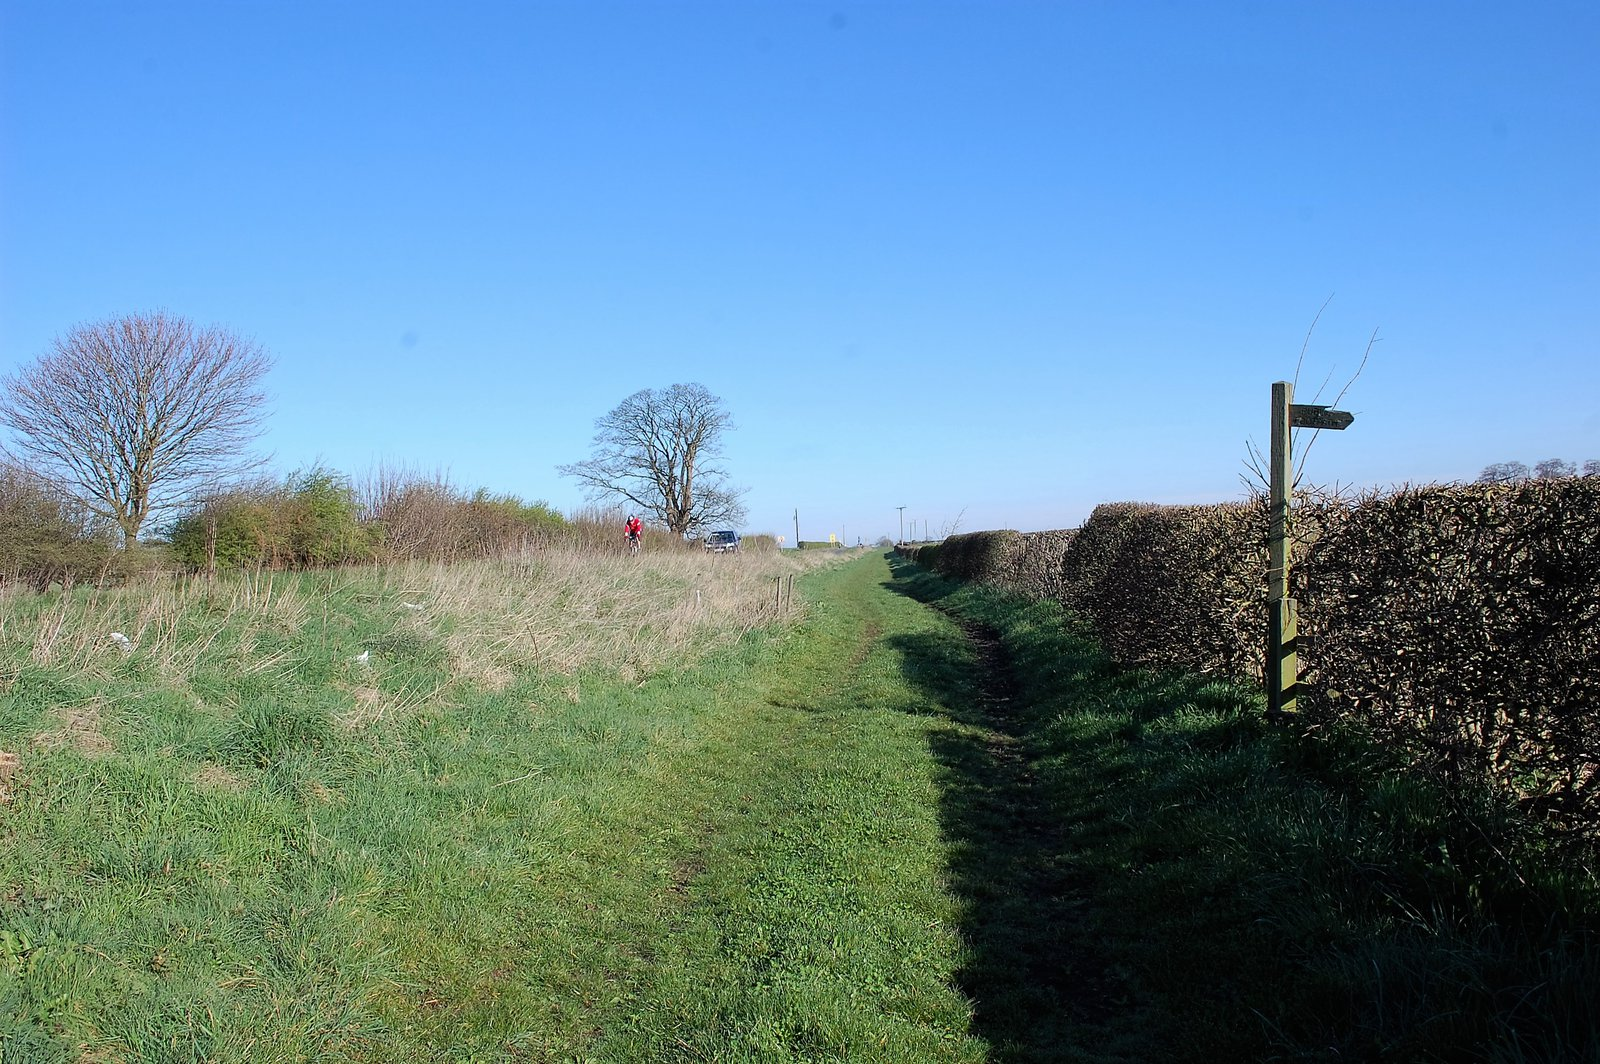 Dere Street, now Boroughbridge Road, With A Really Wide Verge